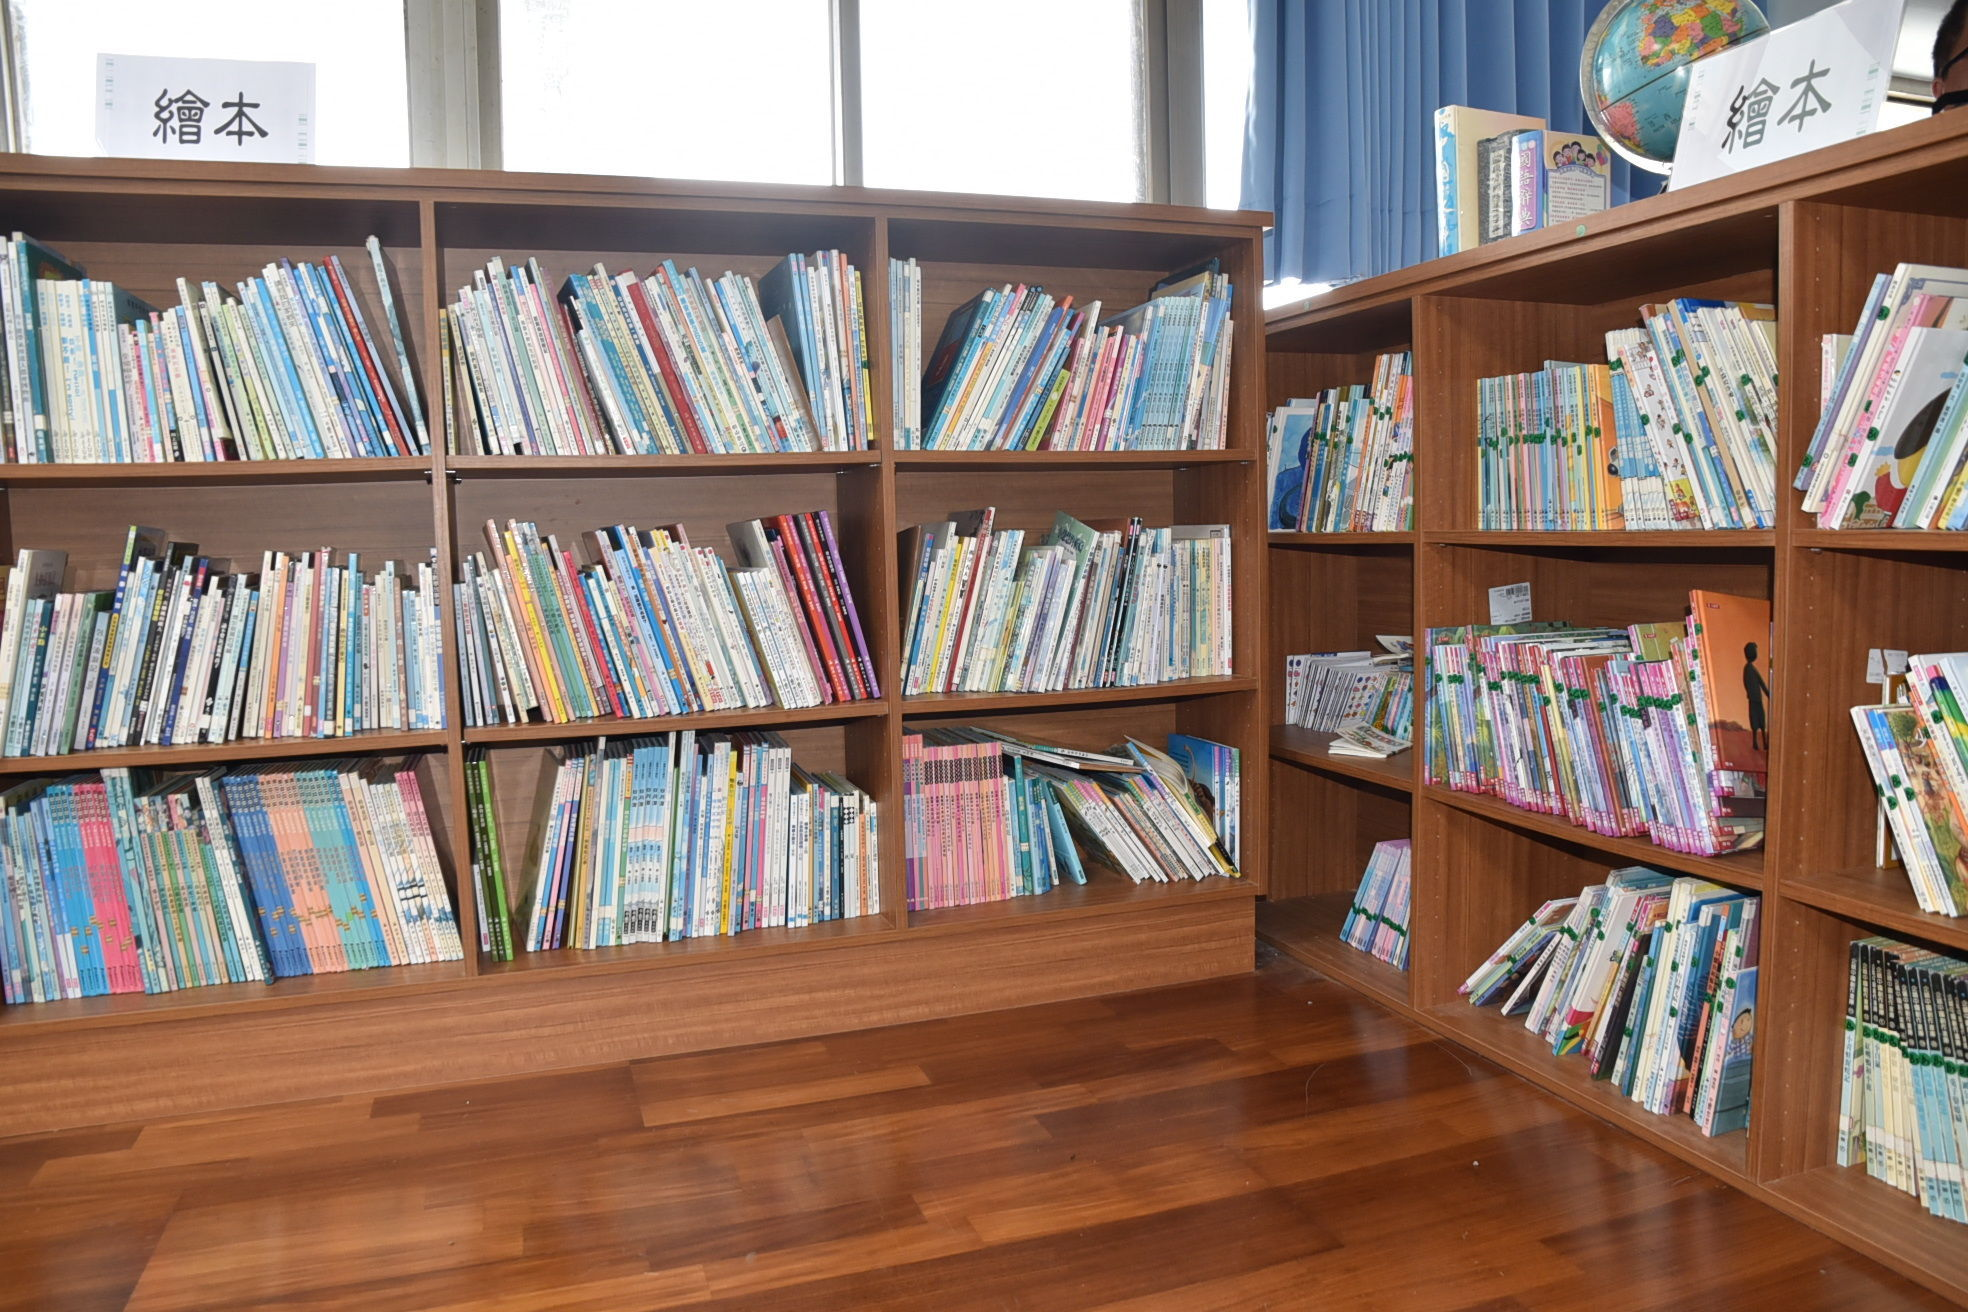 Community reading room at Jhong Tun Elementary